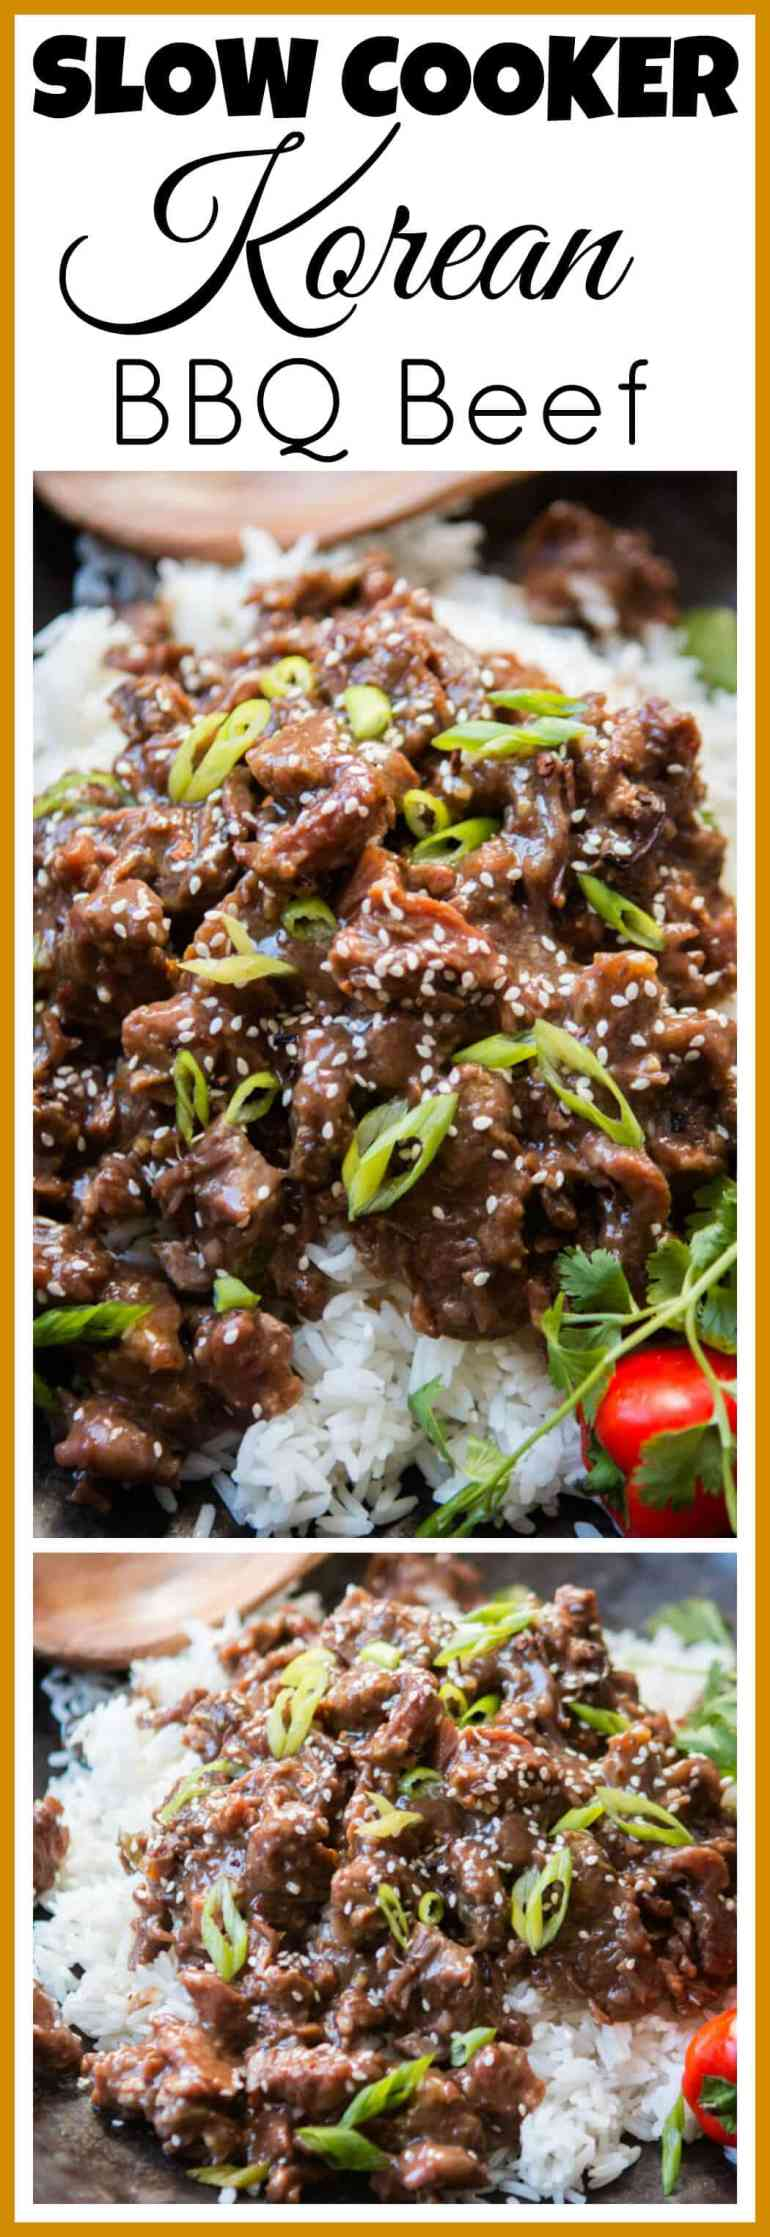 This is so happening for dinner. Slow Cooker Korean BBQ Beef recipe from Damn Delicious's new Cookbook. Seriously one of our family's favorites!